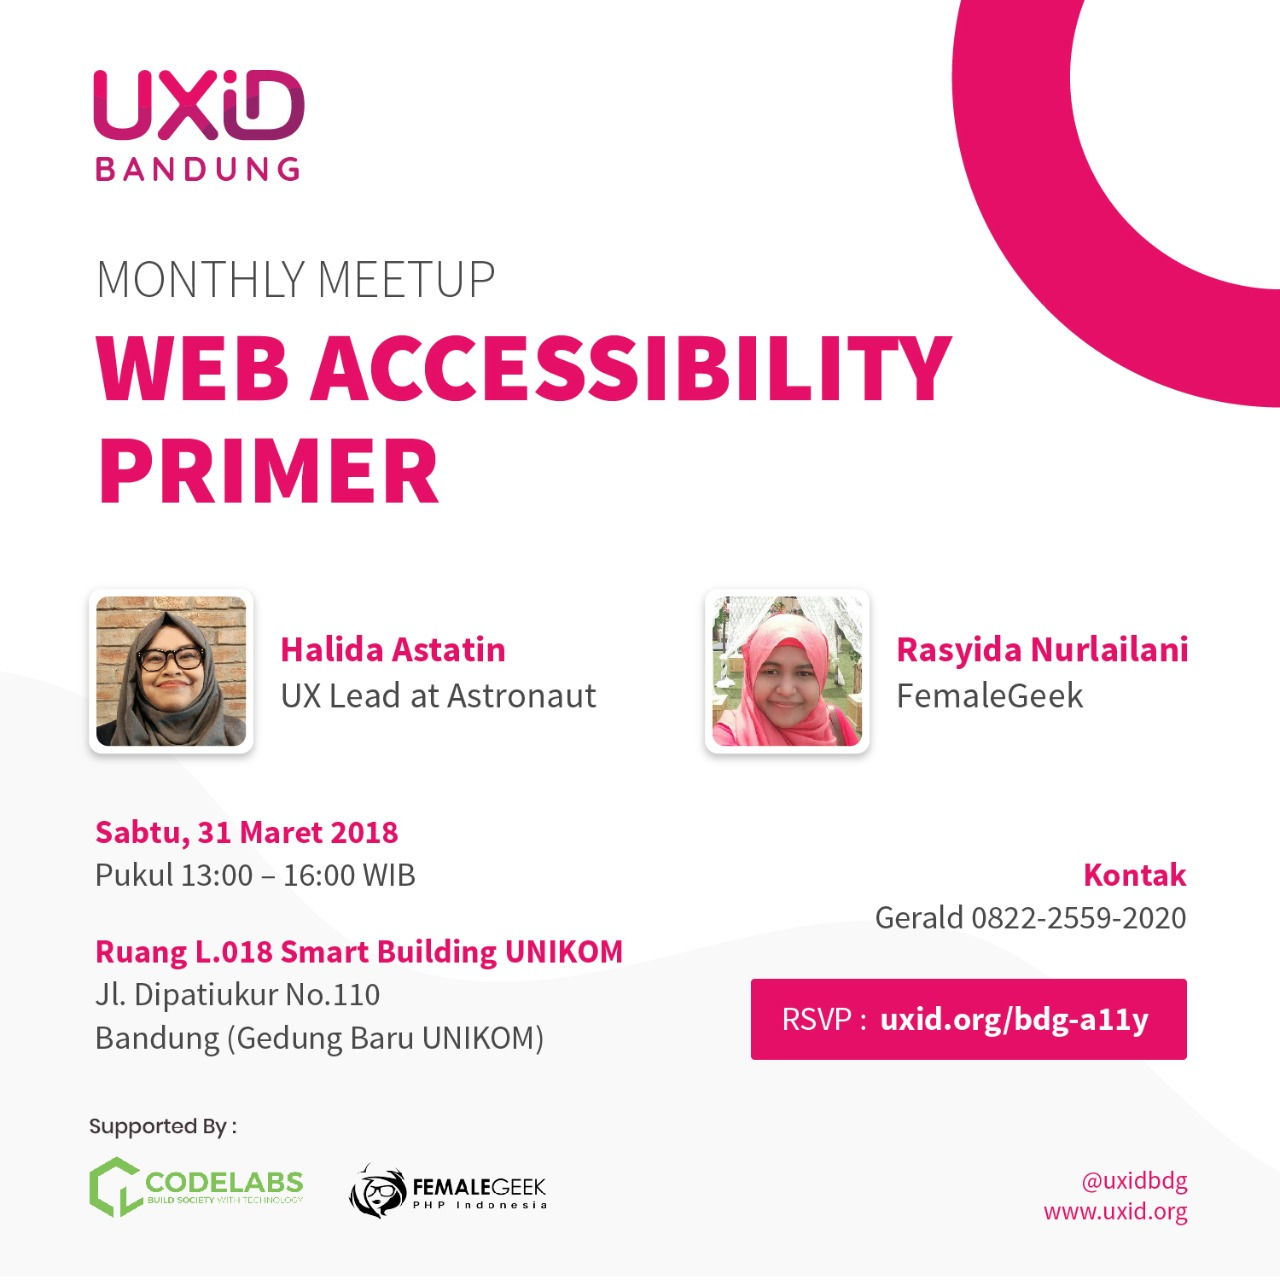 UXiD Bandung Monthly Meetup :  Web Accessibility Primer